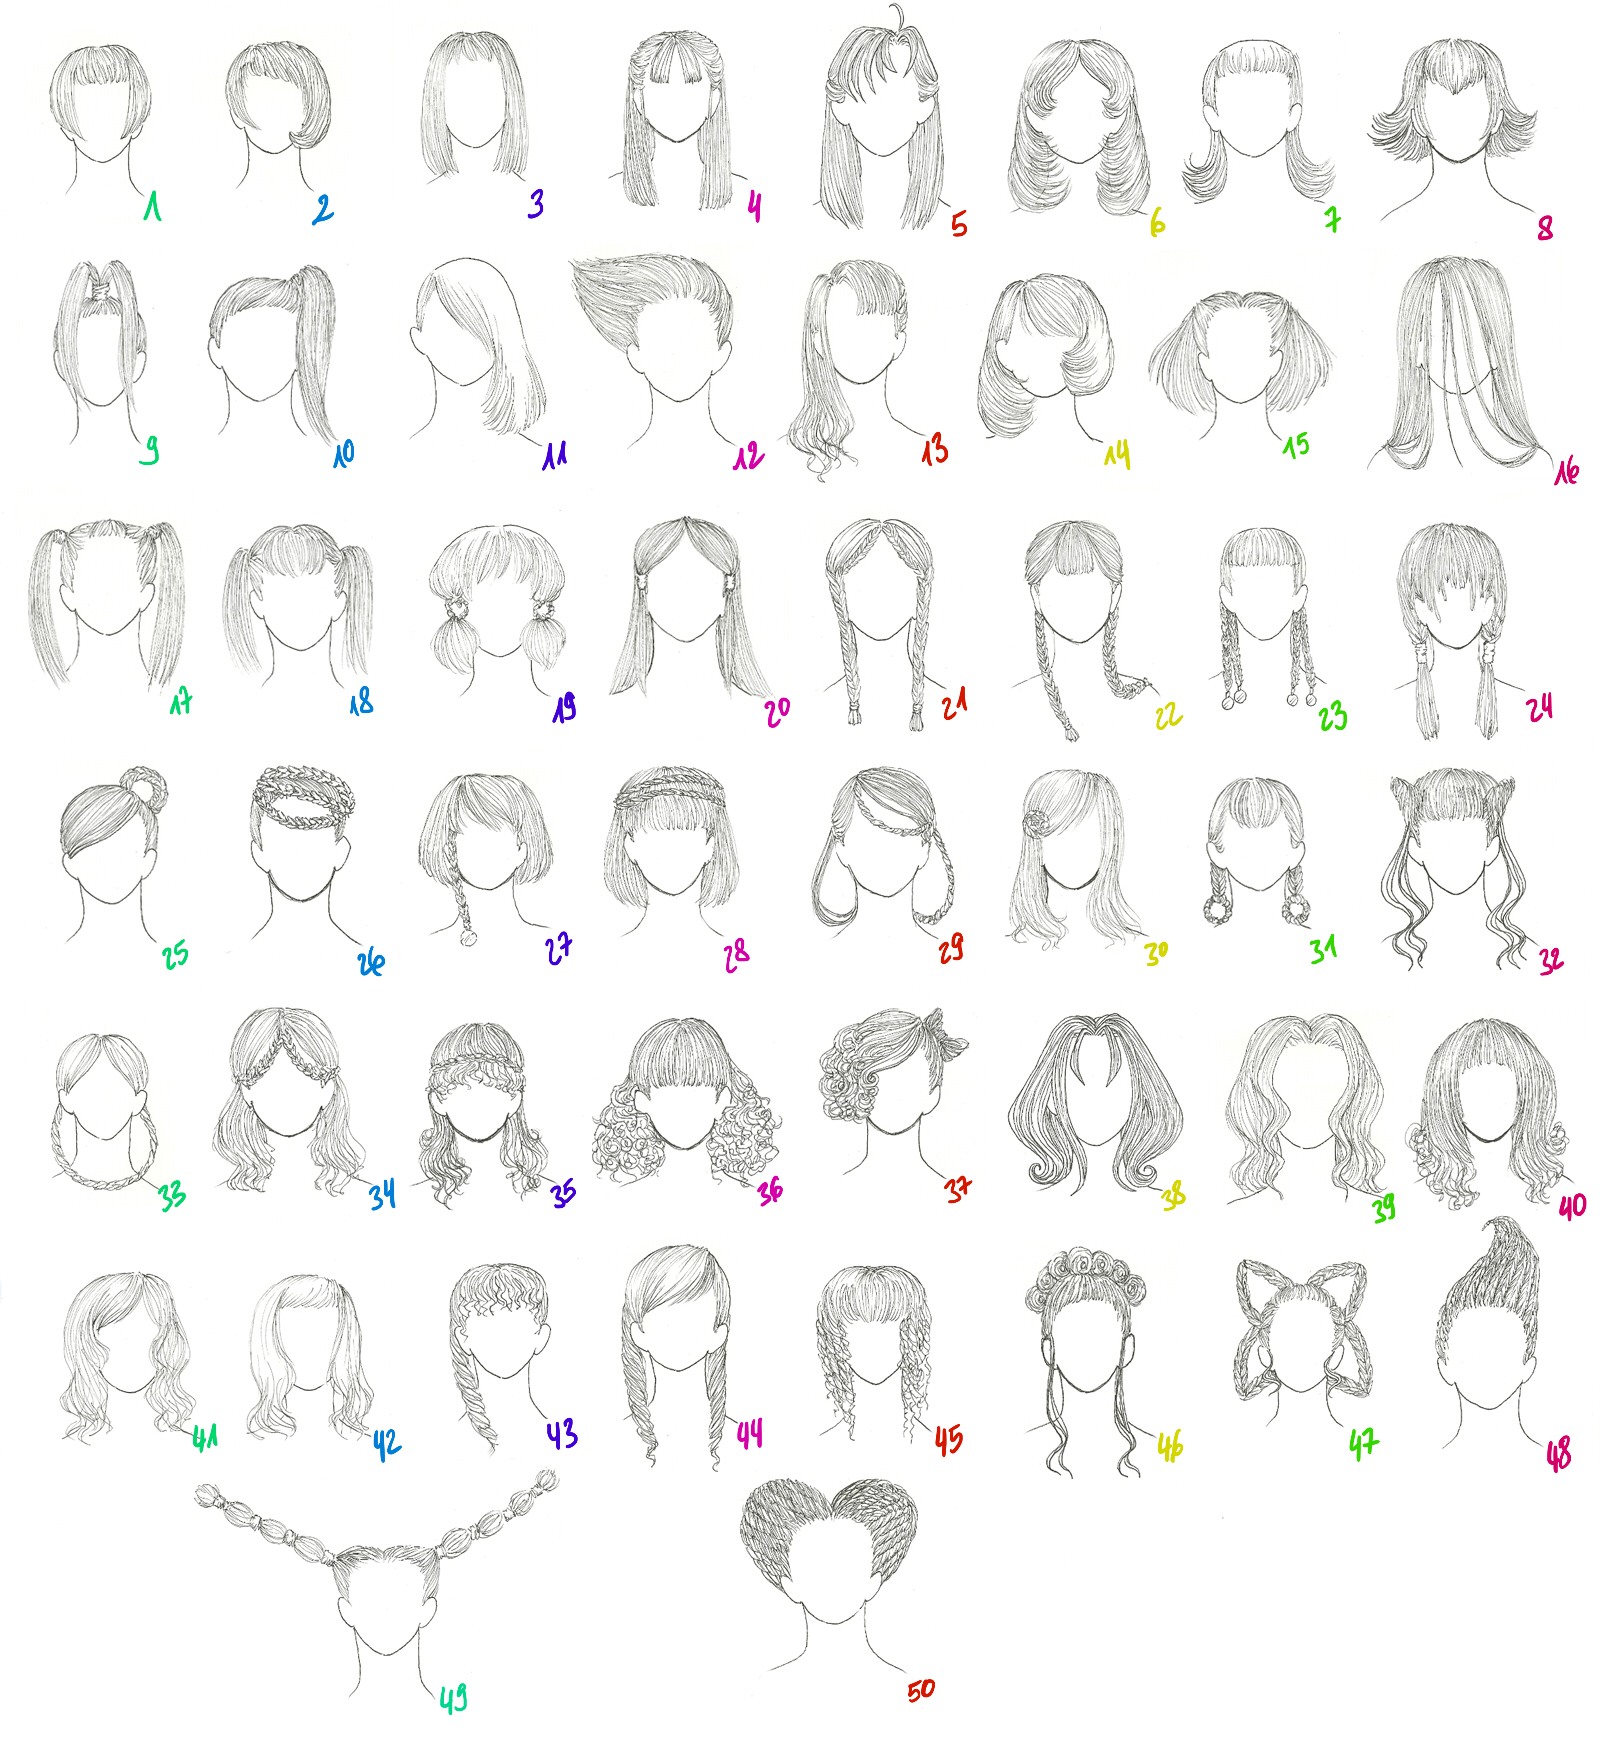 50 Female Anime Hairstyles by AnaisKalinin